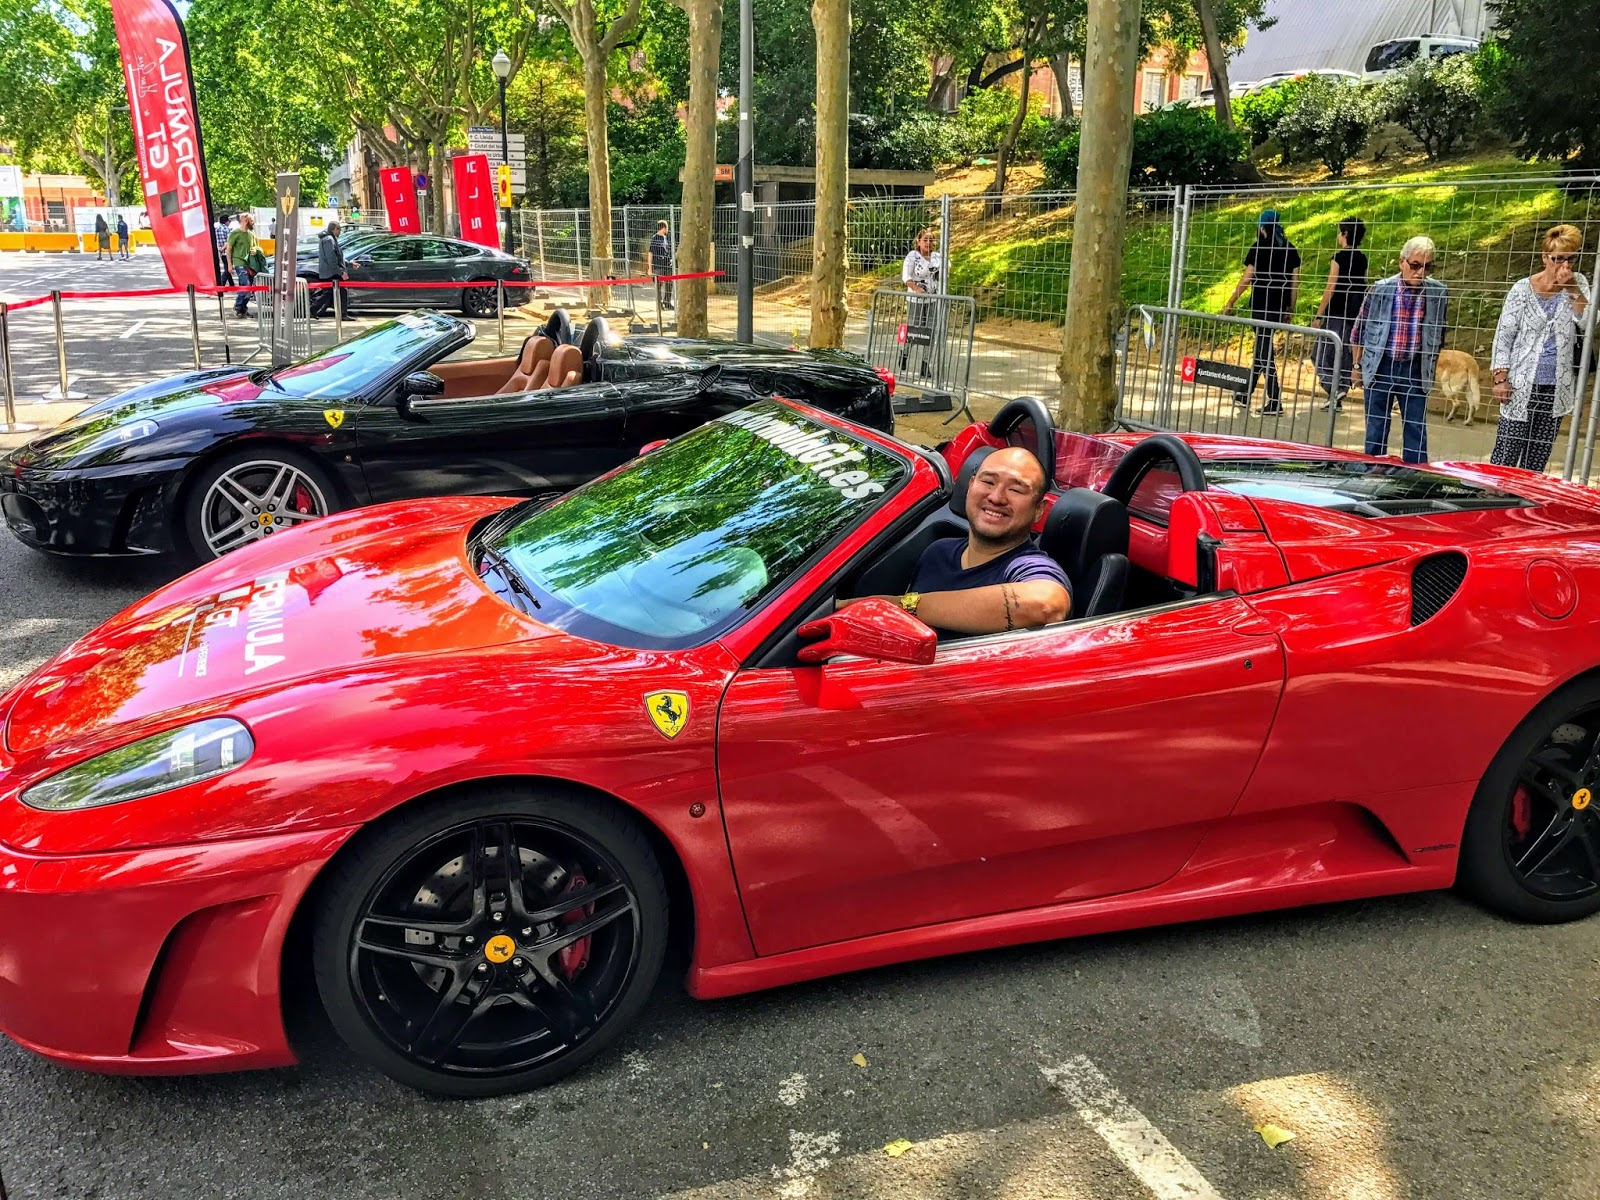 insurance charities to magazine news industry laf by auctioned charity italian new for be laferrari ferrari car